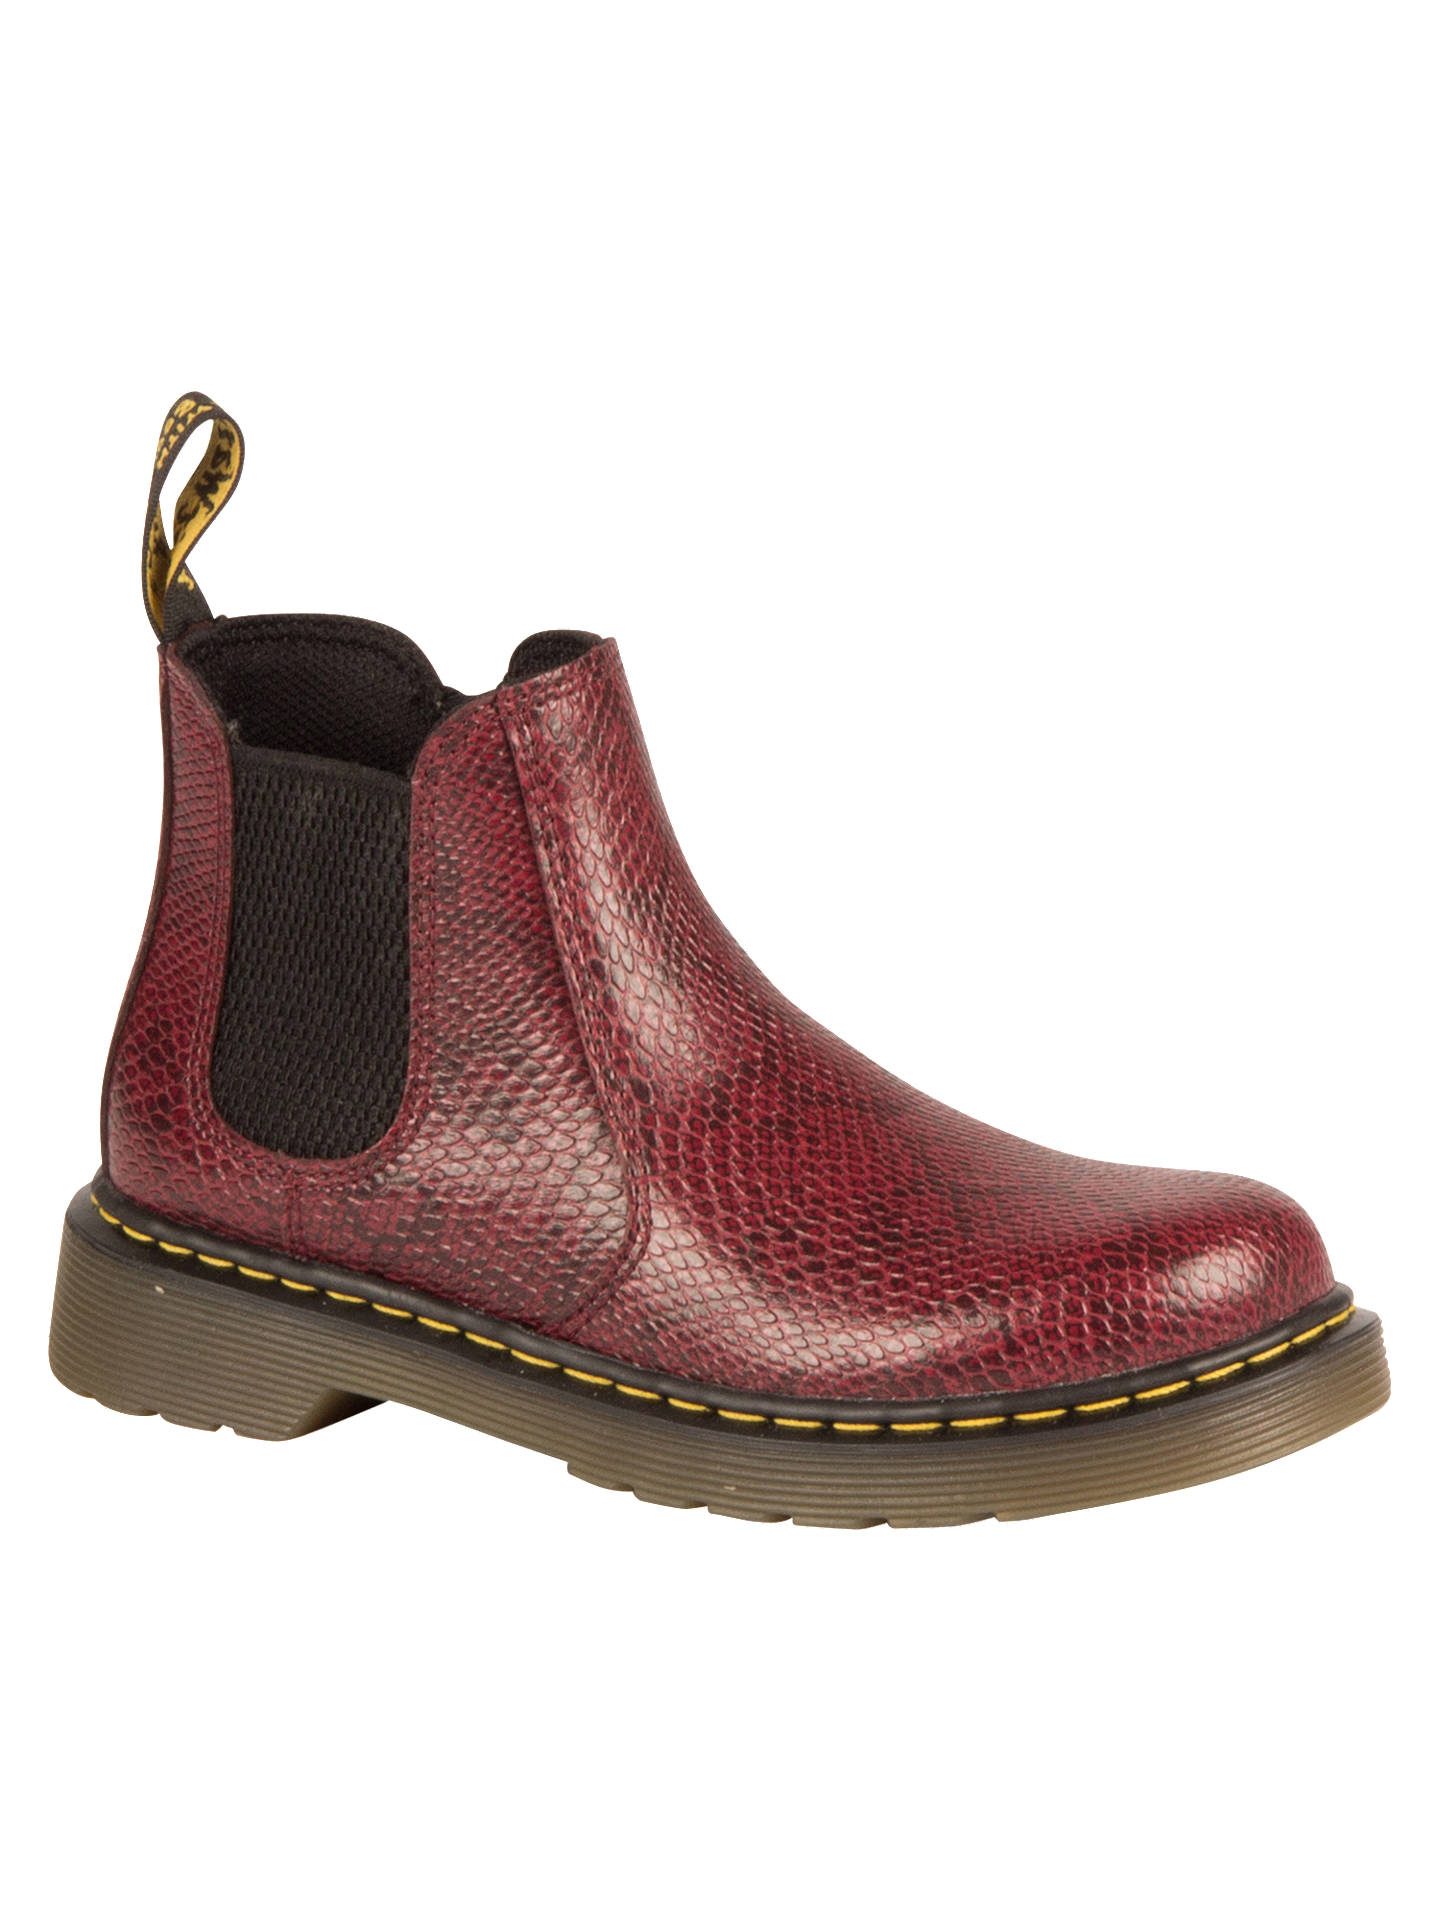 b66f225432783 Buy Dr Martens Children's Banzai Chelsea Boots, Wine, 10 Jnr Online at  johnlewis.